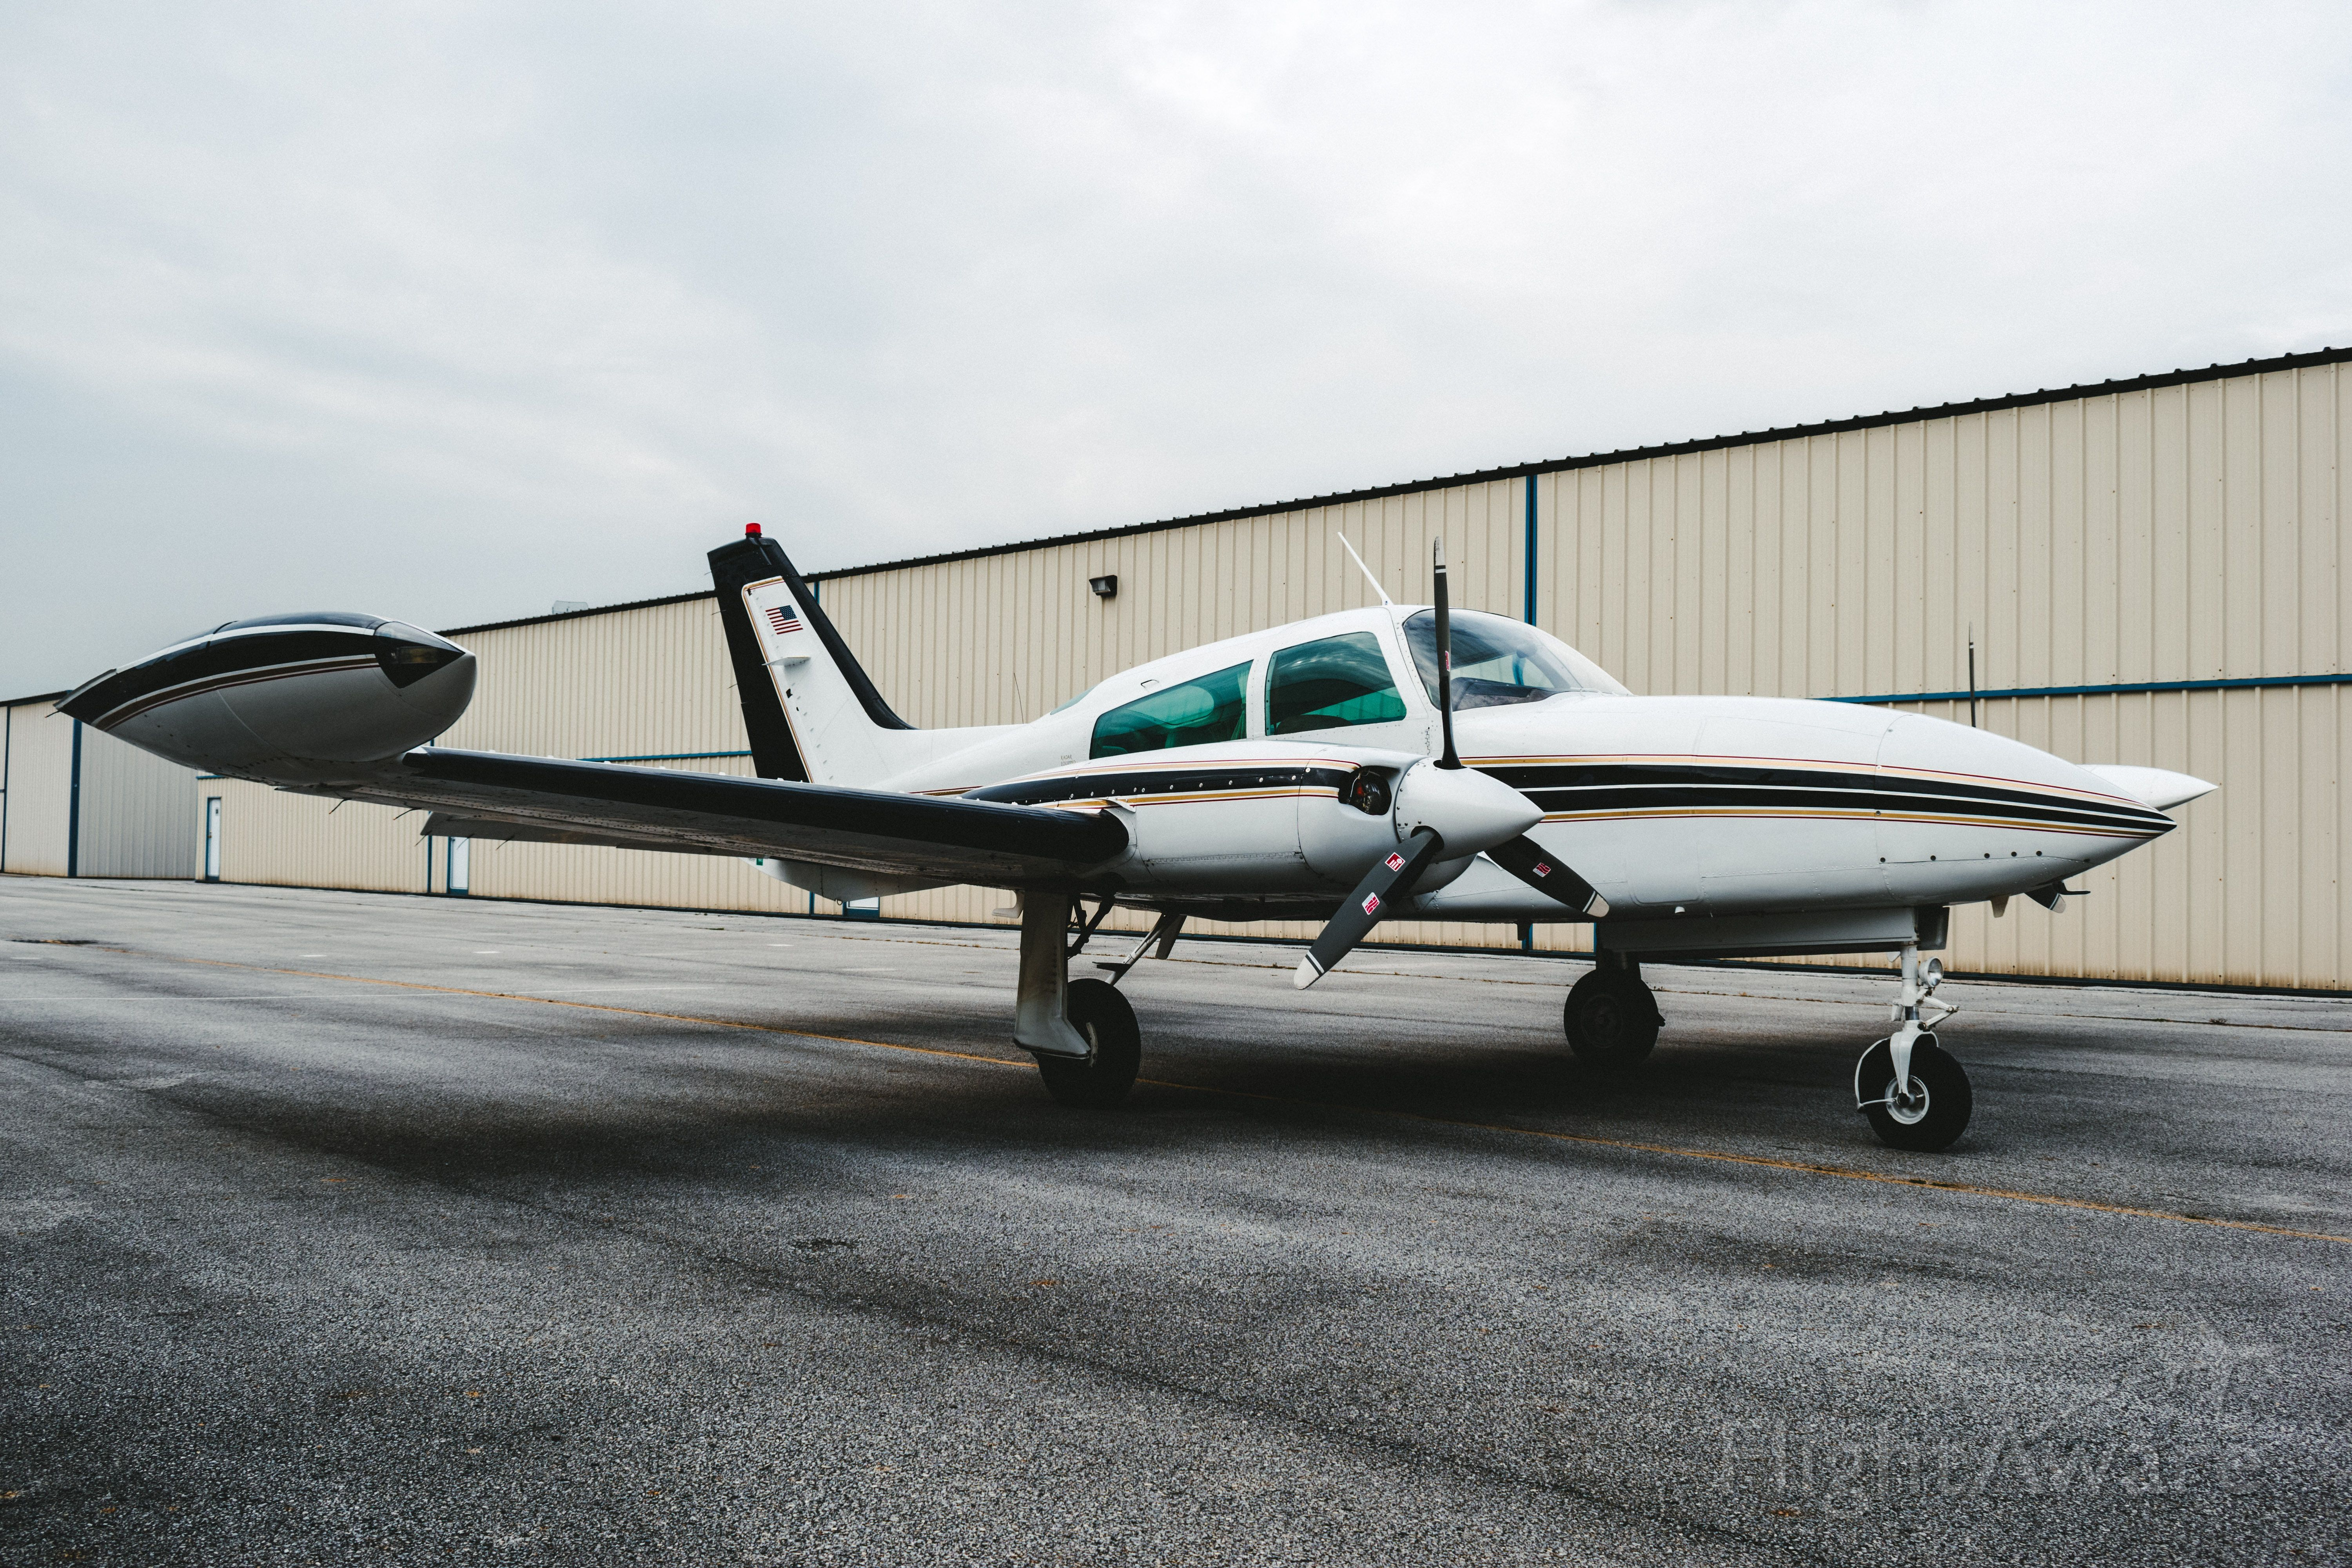 Cessna 310 (N300EB) - Plane pulled out and ready to go!